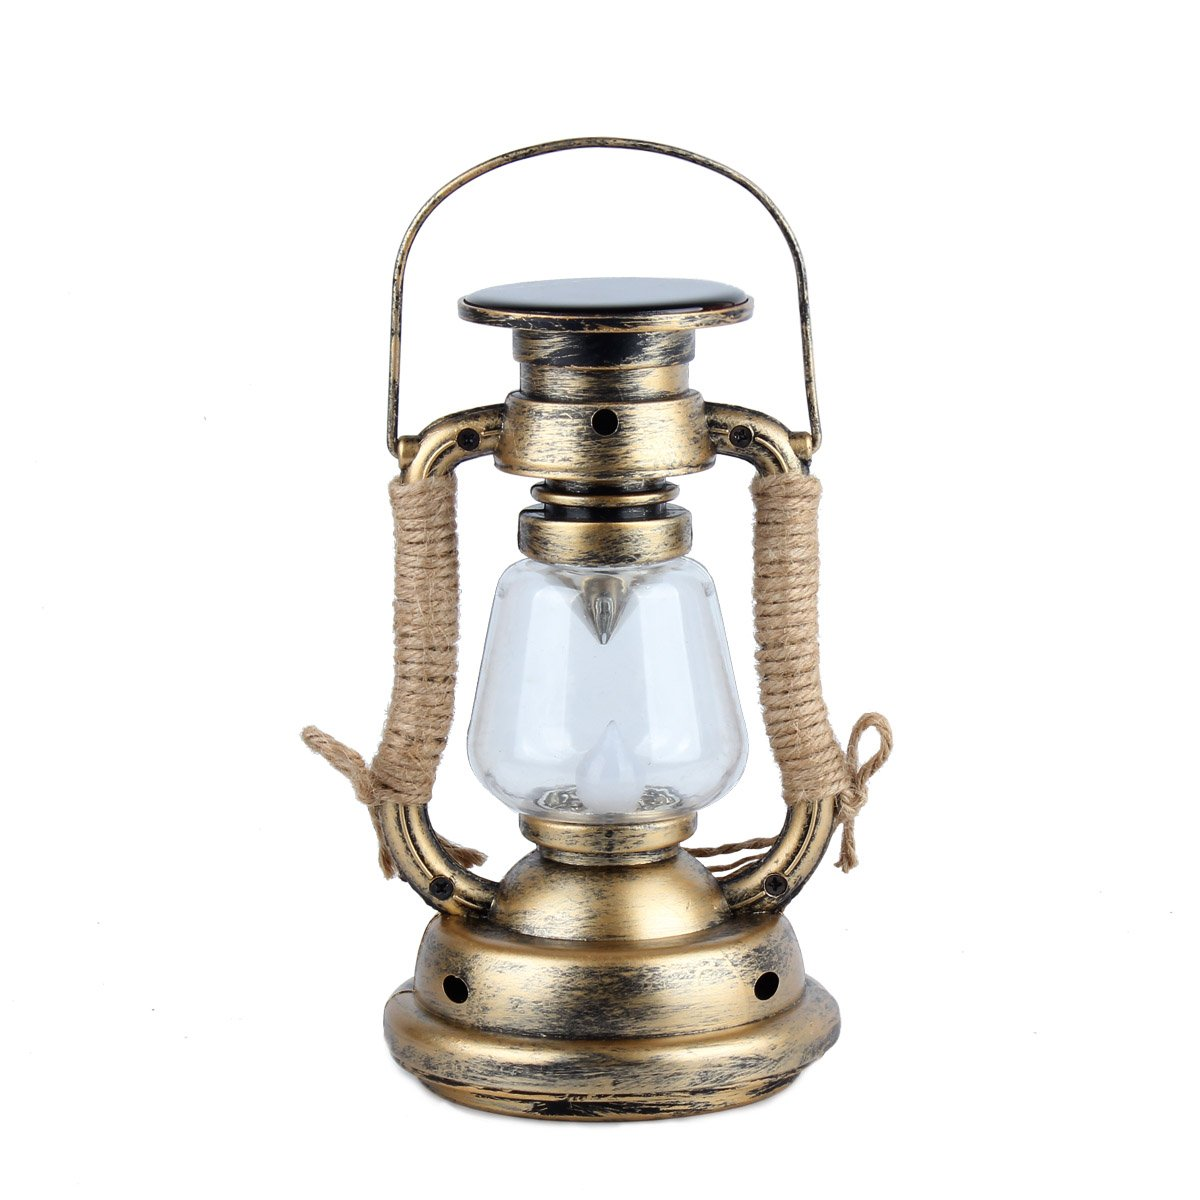 Solar LED Vintage Lantern, Rechargeable Hanging Lamp Flameless Candle, Warm White LED lighting for Garden Lawn Wedding Outdoor Party Decor (1AA Included)